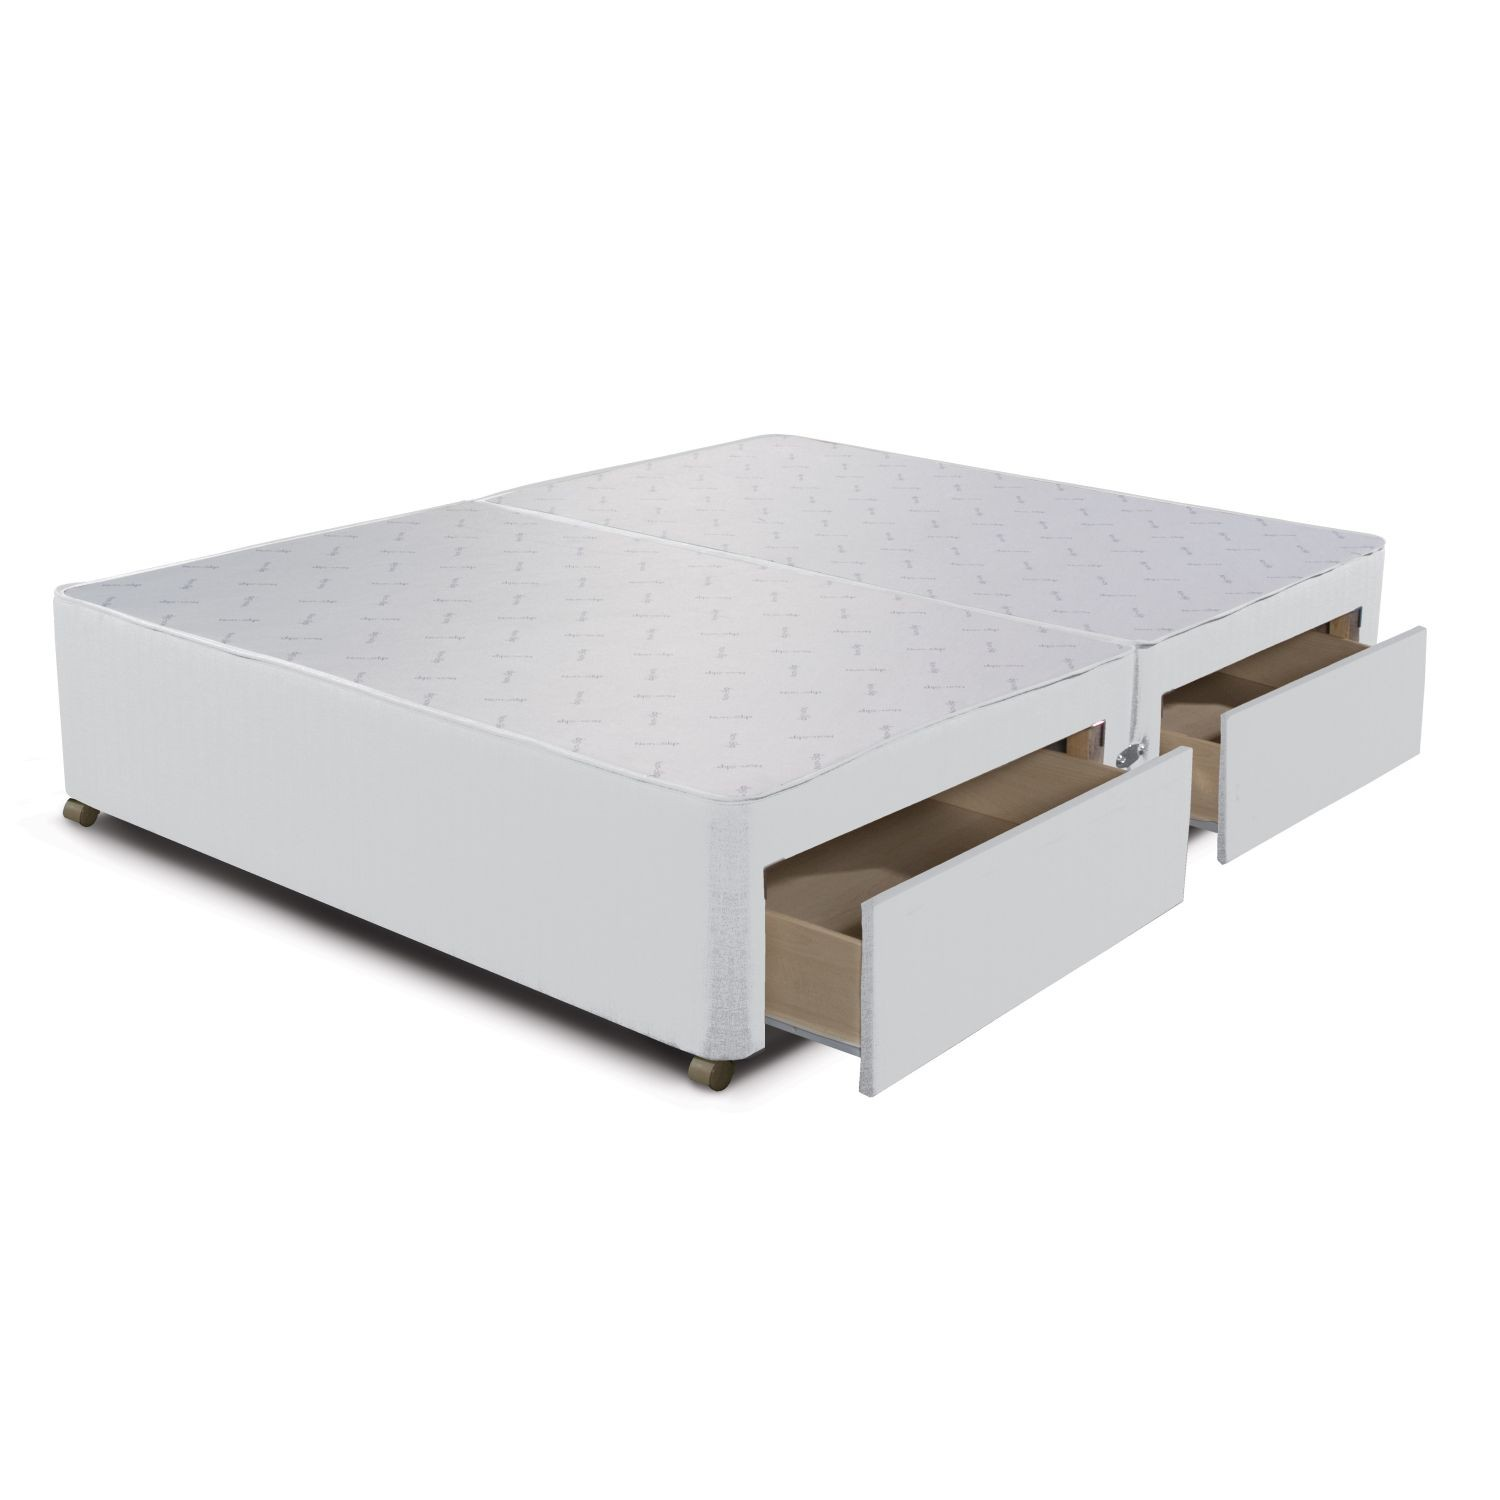 Sleepeezee 4 drawer divan base double white leekes for High divan base